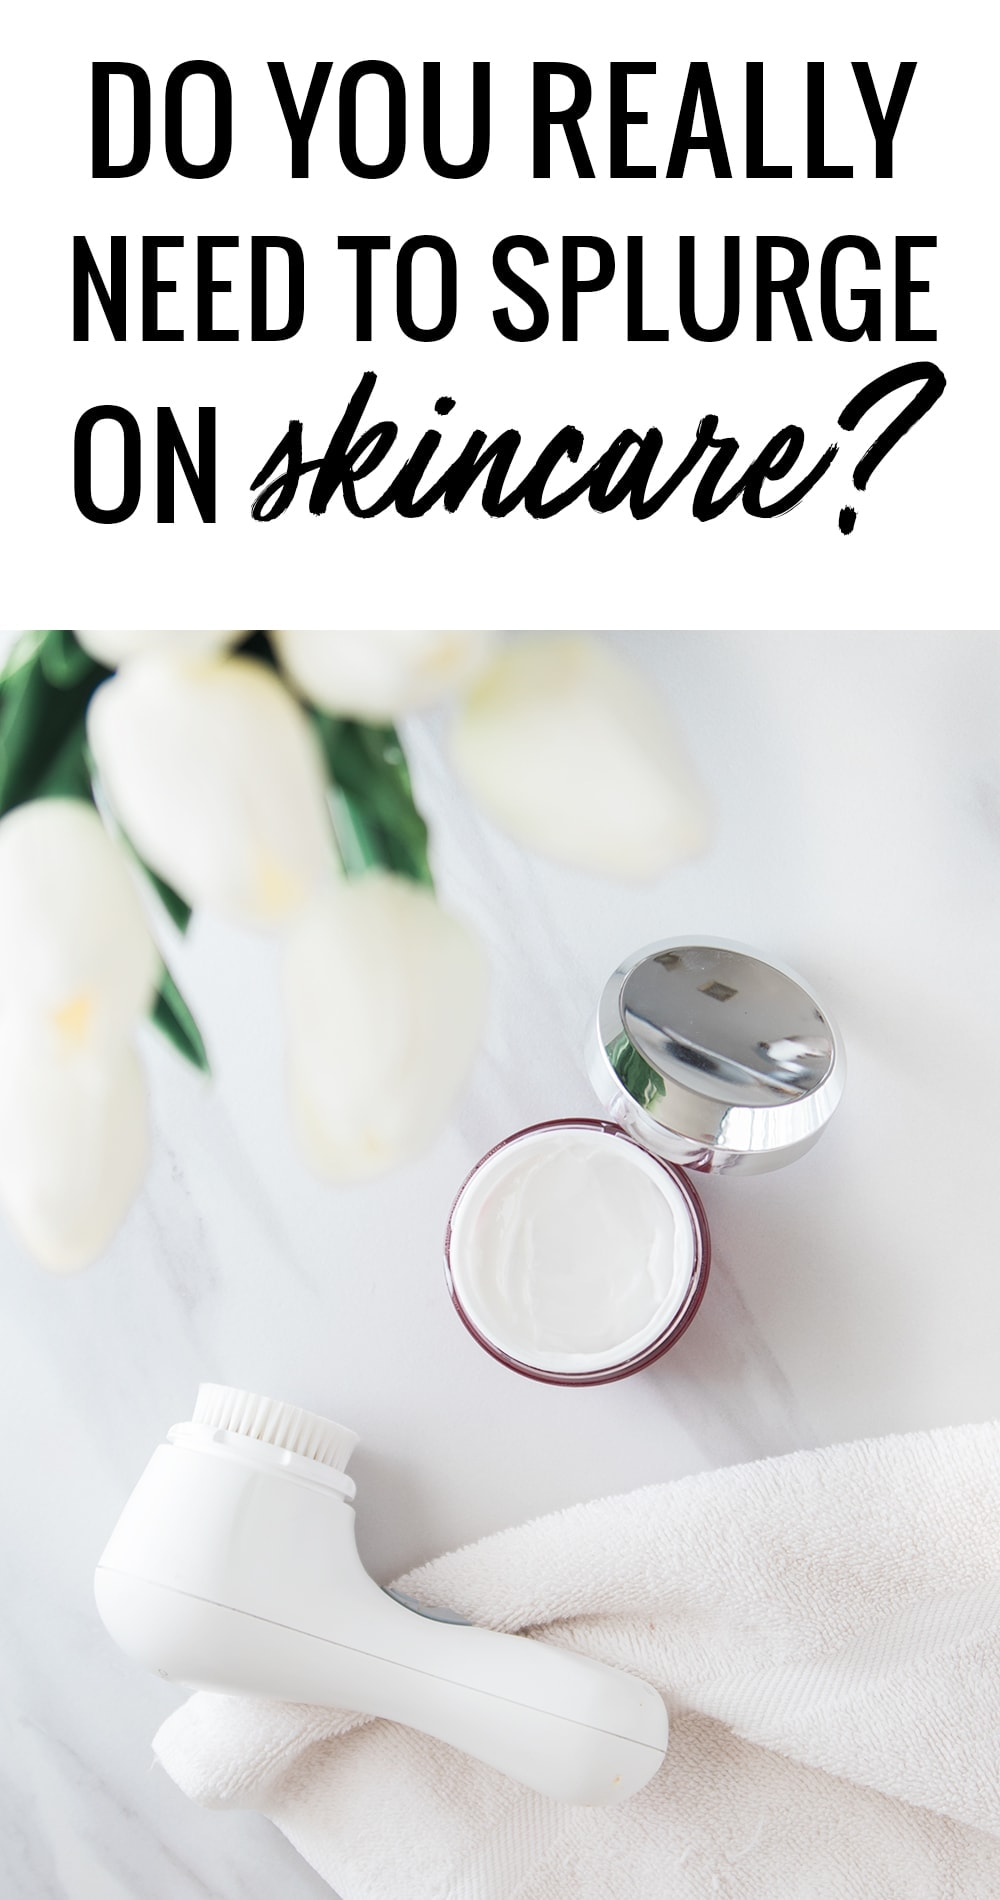 Skincare Tips: Do You Really Need to Splurge on Skincare? by Houston beauty blogger Meg O. on the Go